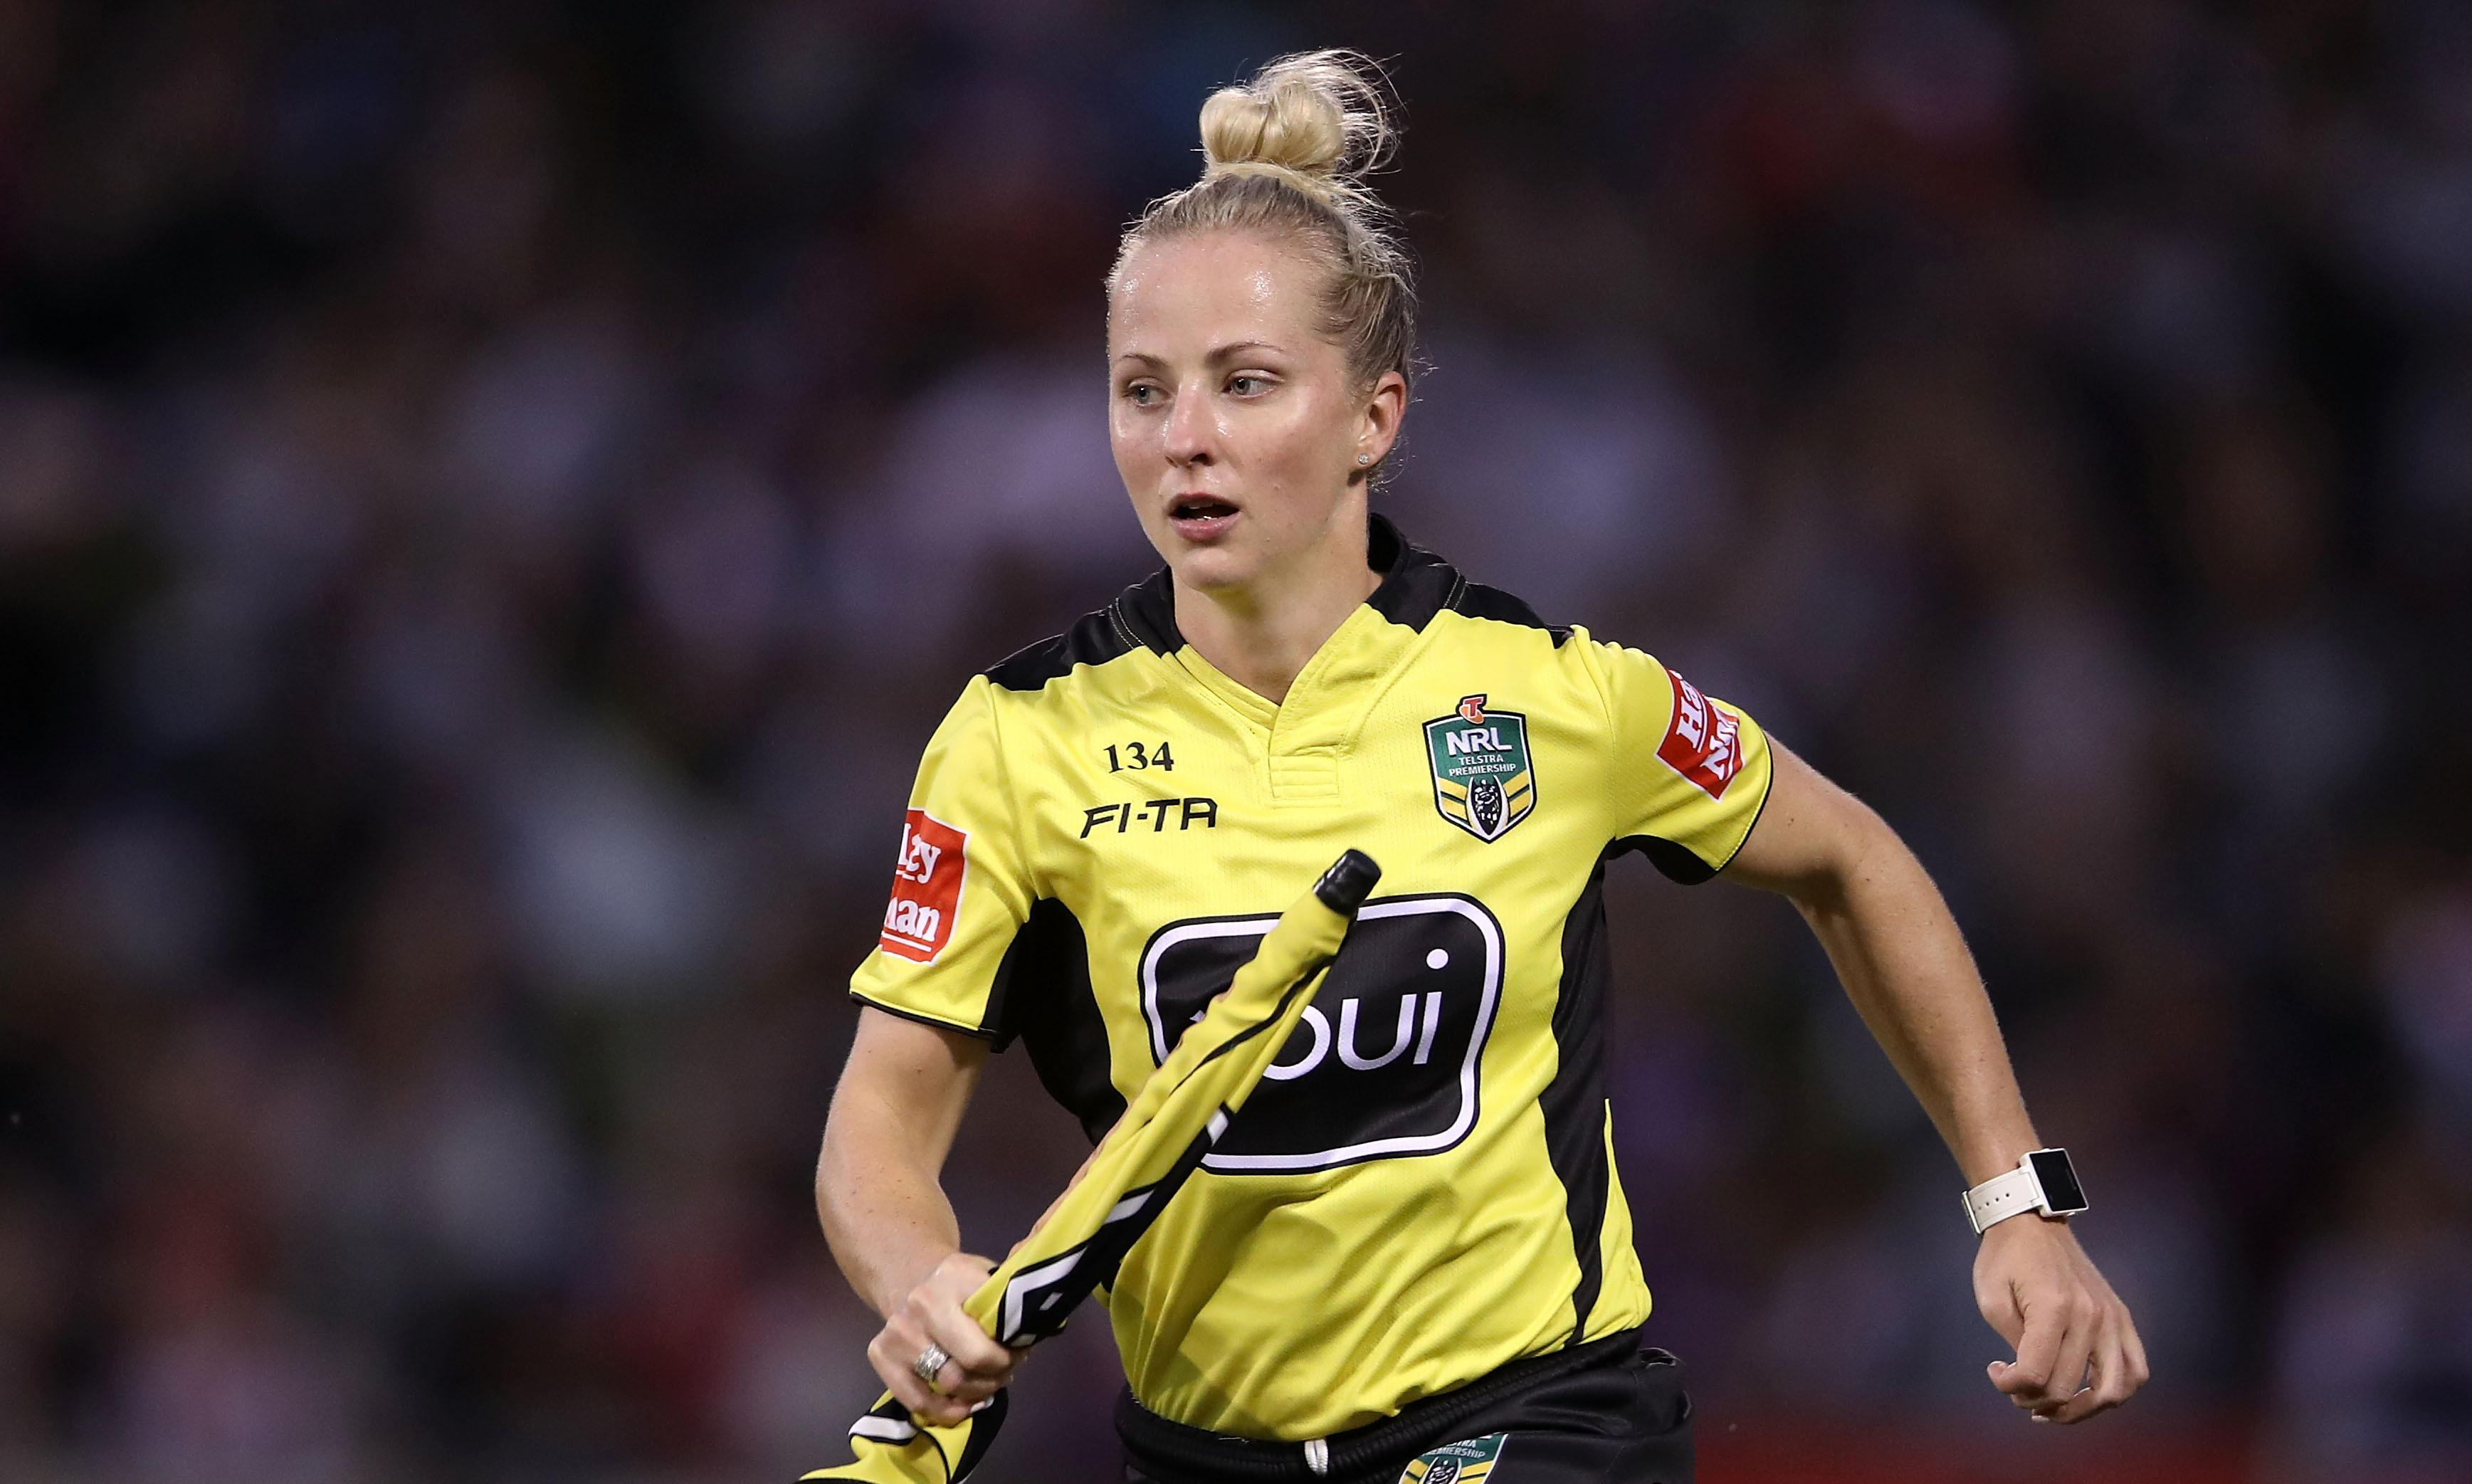 'Step in the right direction': Broncos match to make history with female referee